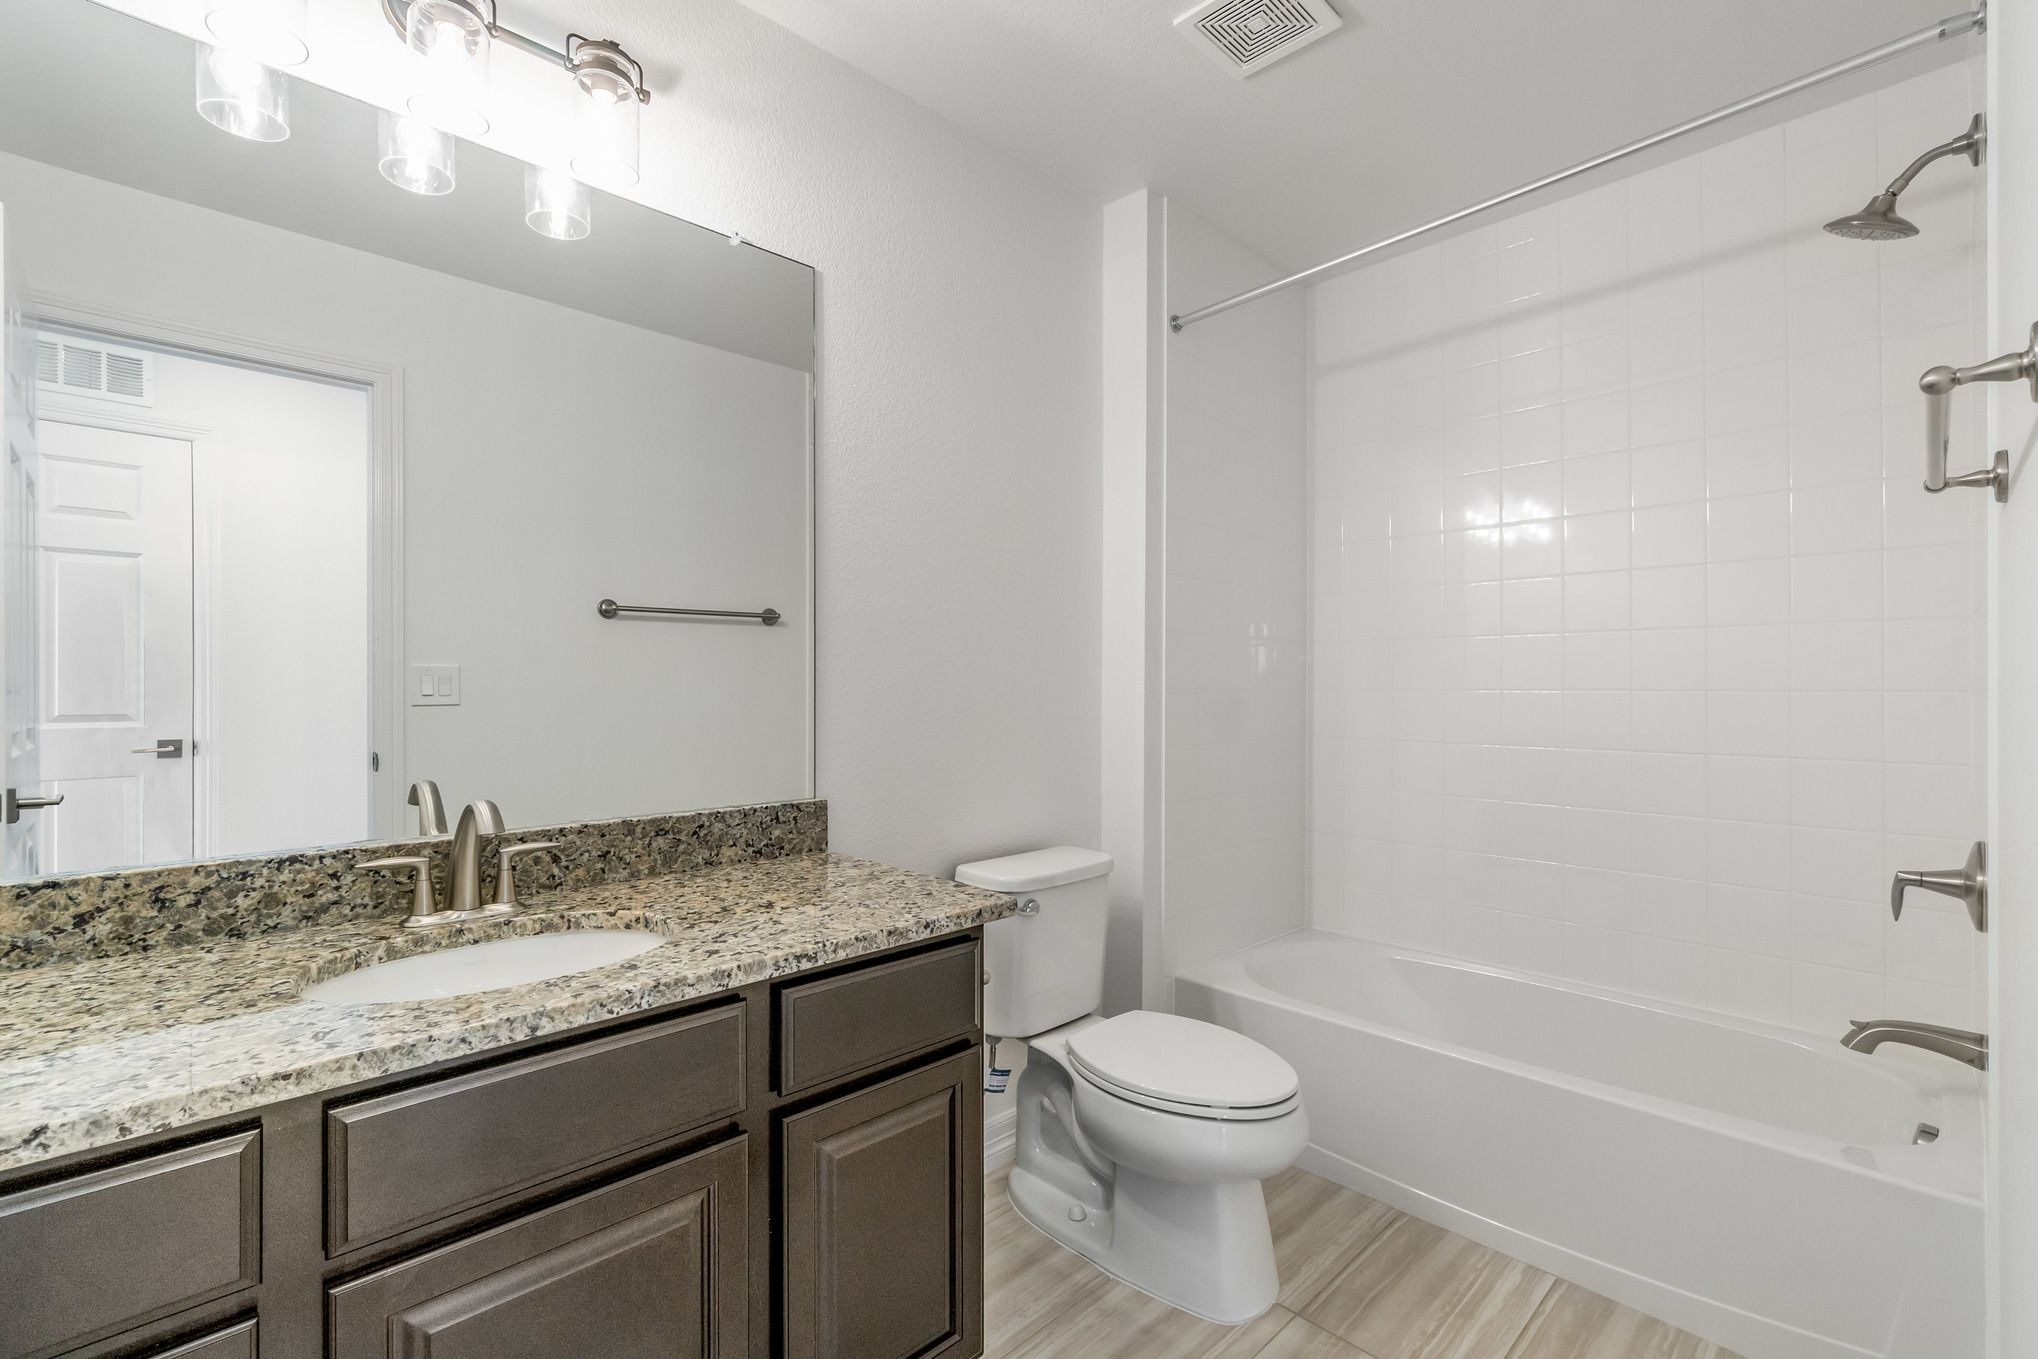 Bathroom featured in the Hazel By Lokal Homes in Colorado Springs, CO